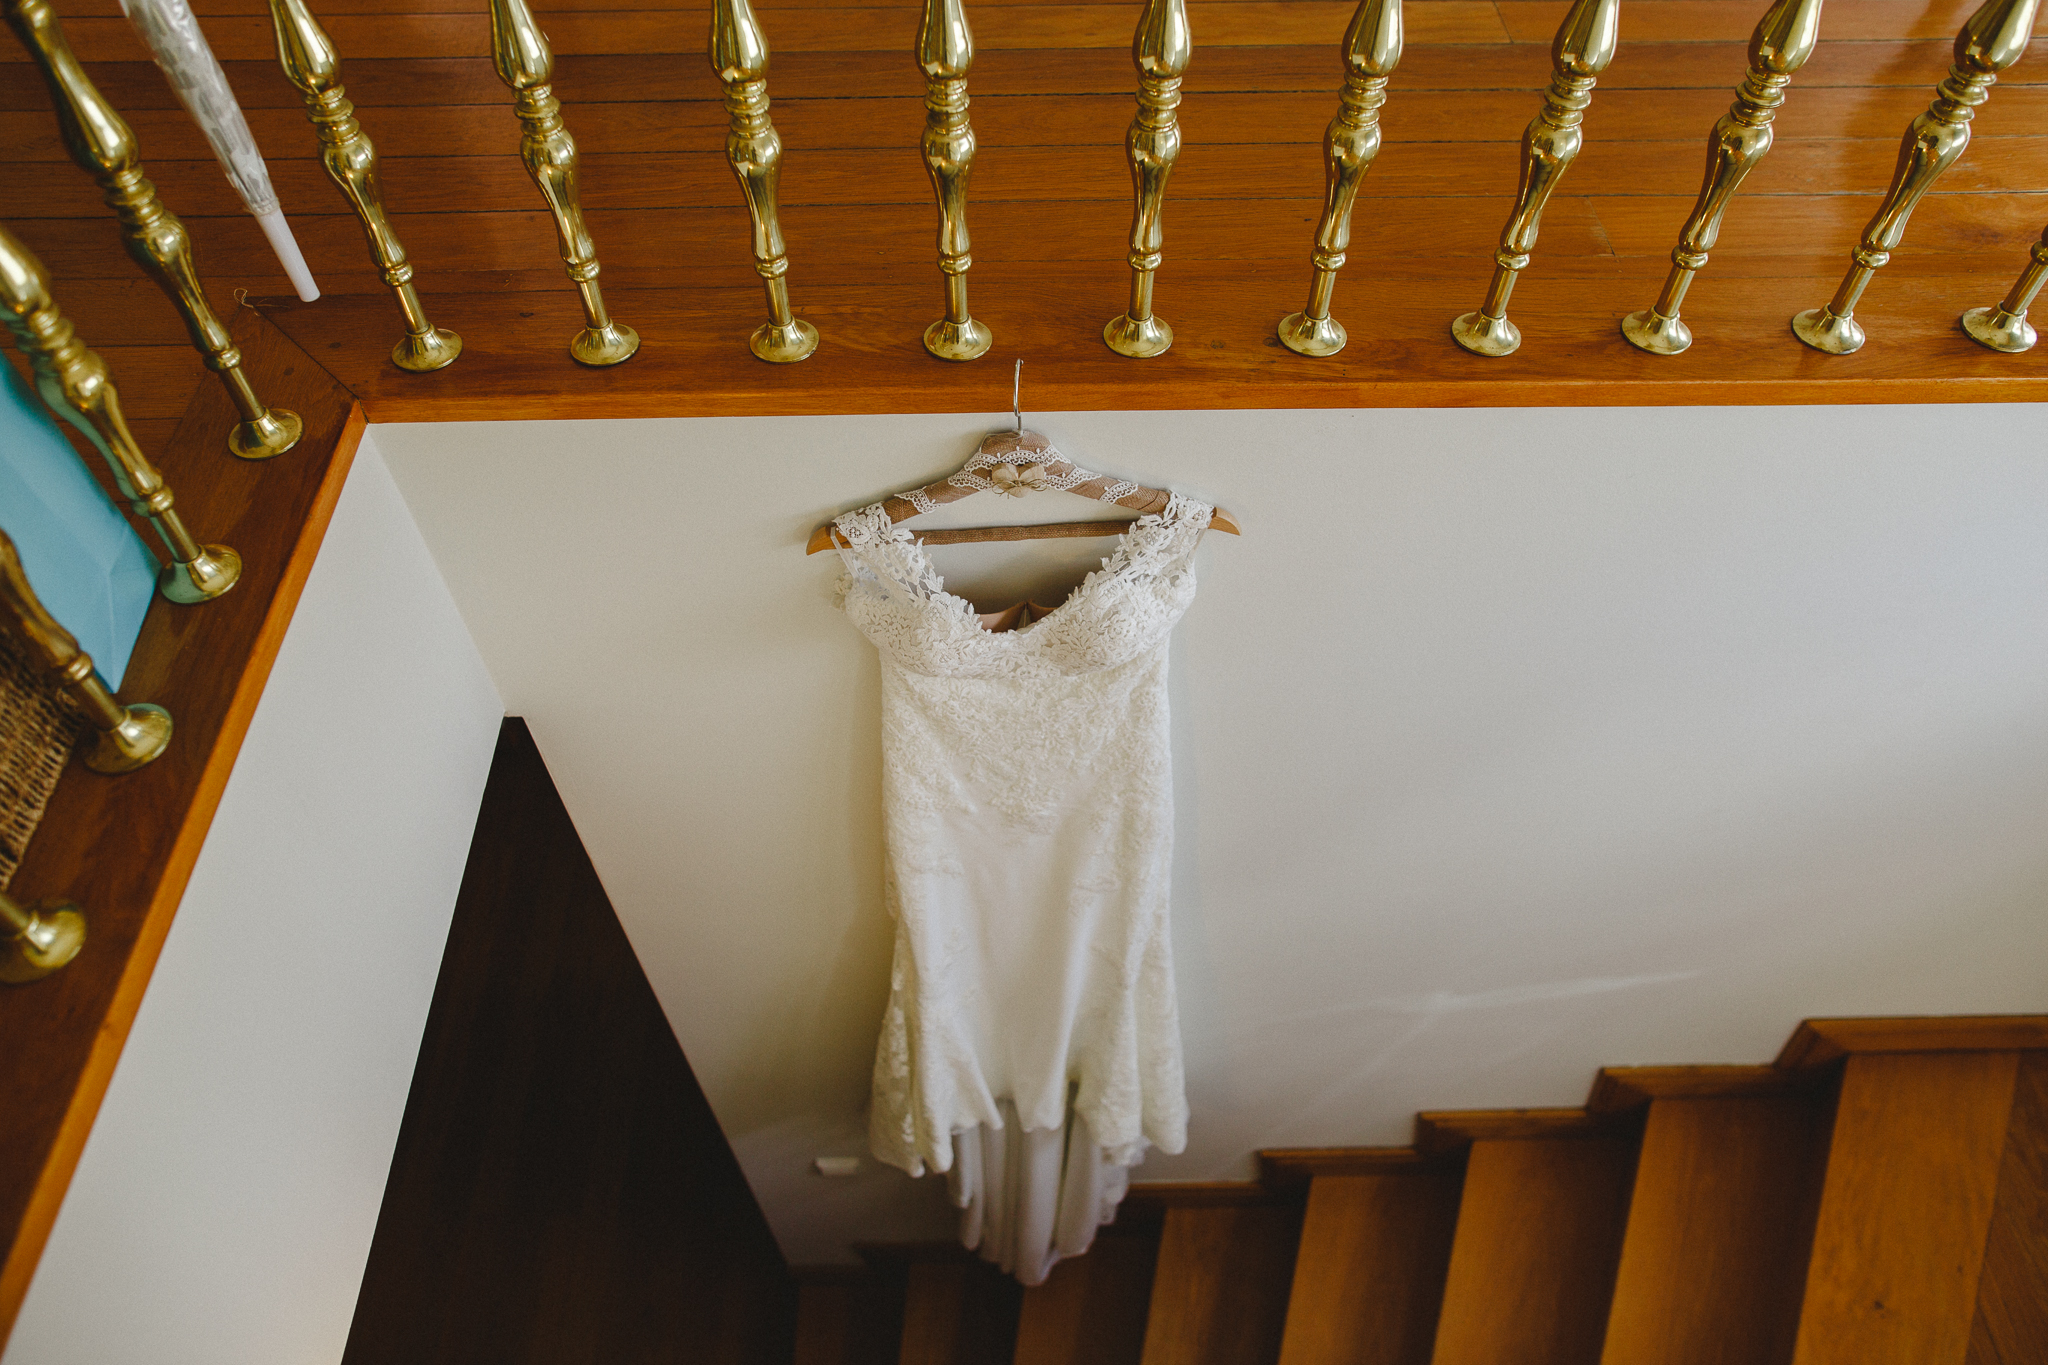 Bride's wedding dress hanging on the stairs